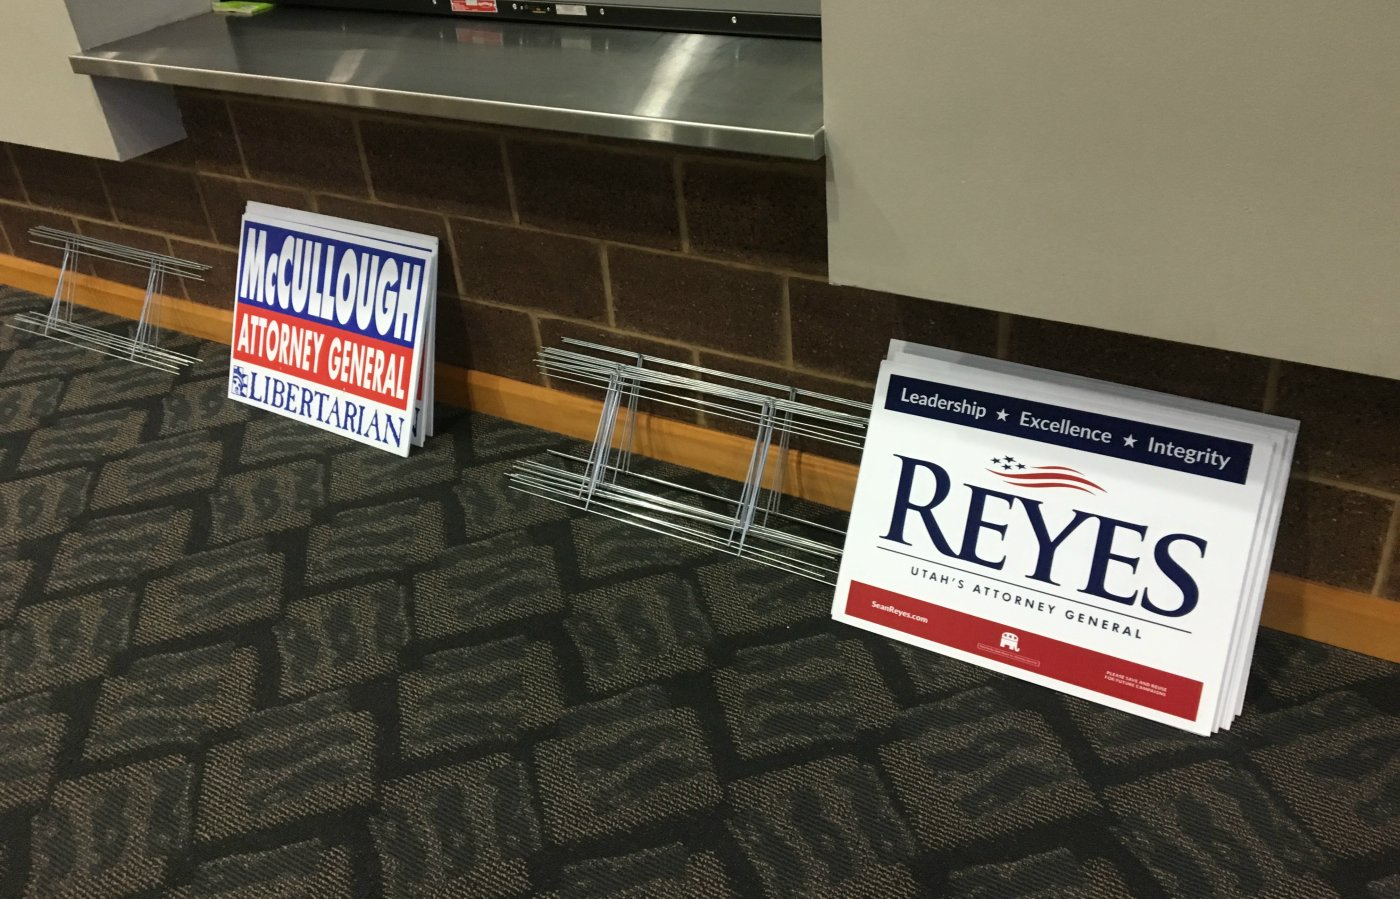 """Campaign signs for Utah Attorney Libertarian candidate Andrew McCullough and Republican incumbent Sean Reyes set against the wall while the """"modified"""" Utah Attorney General dabate takes place, St. George, Utah, Sept. 21, 2016 